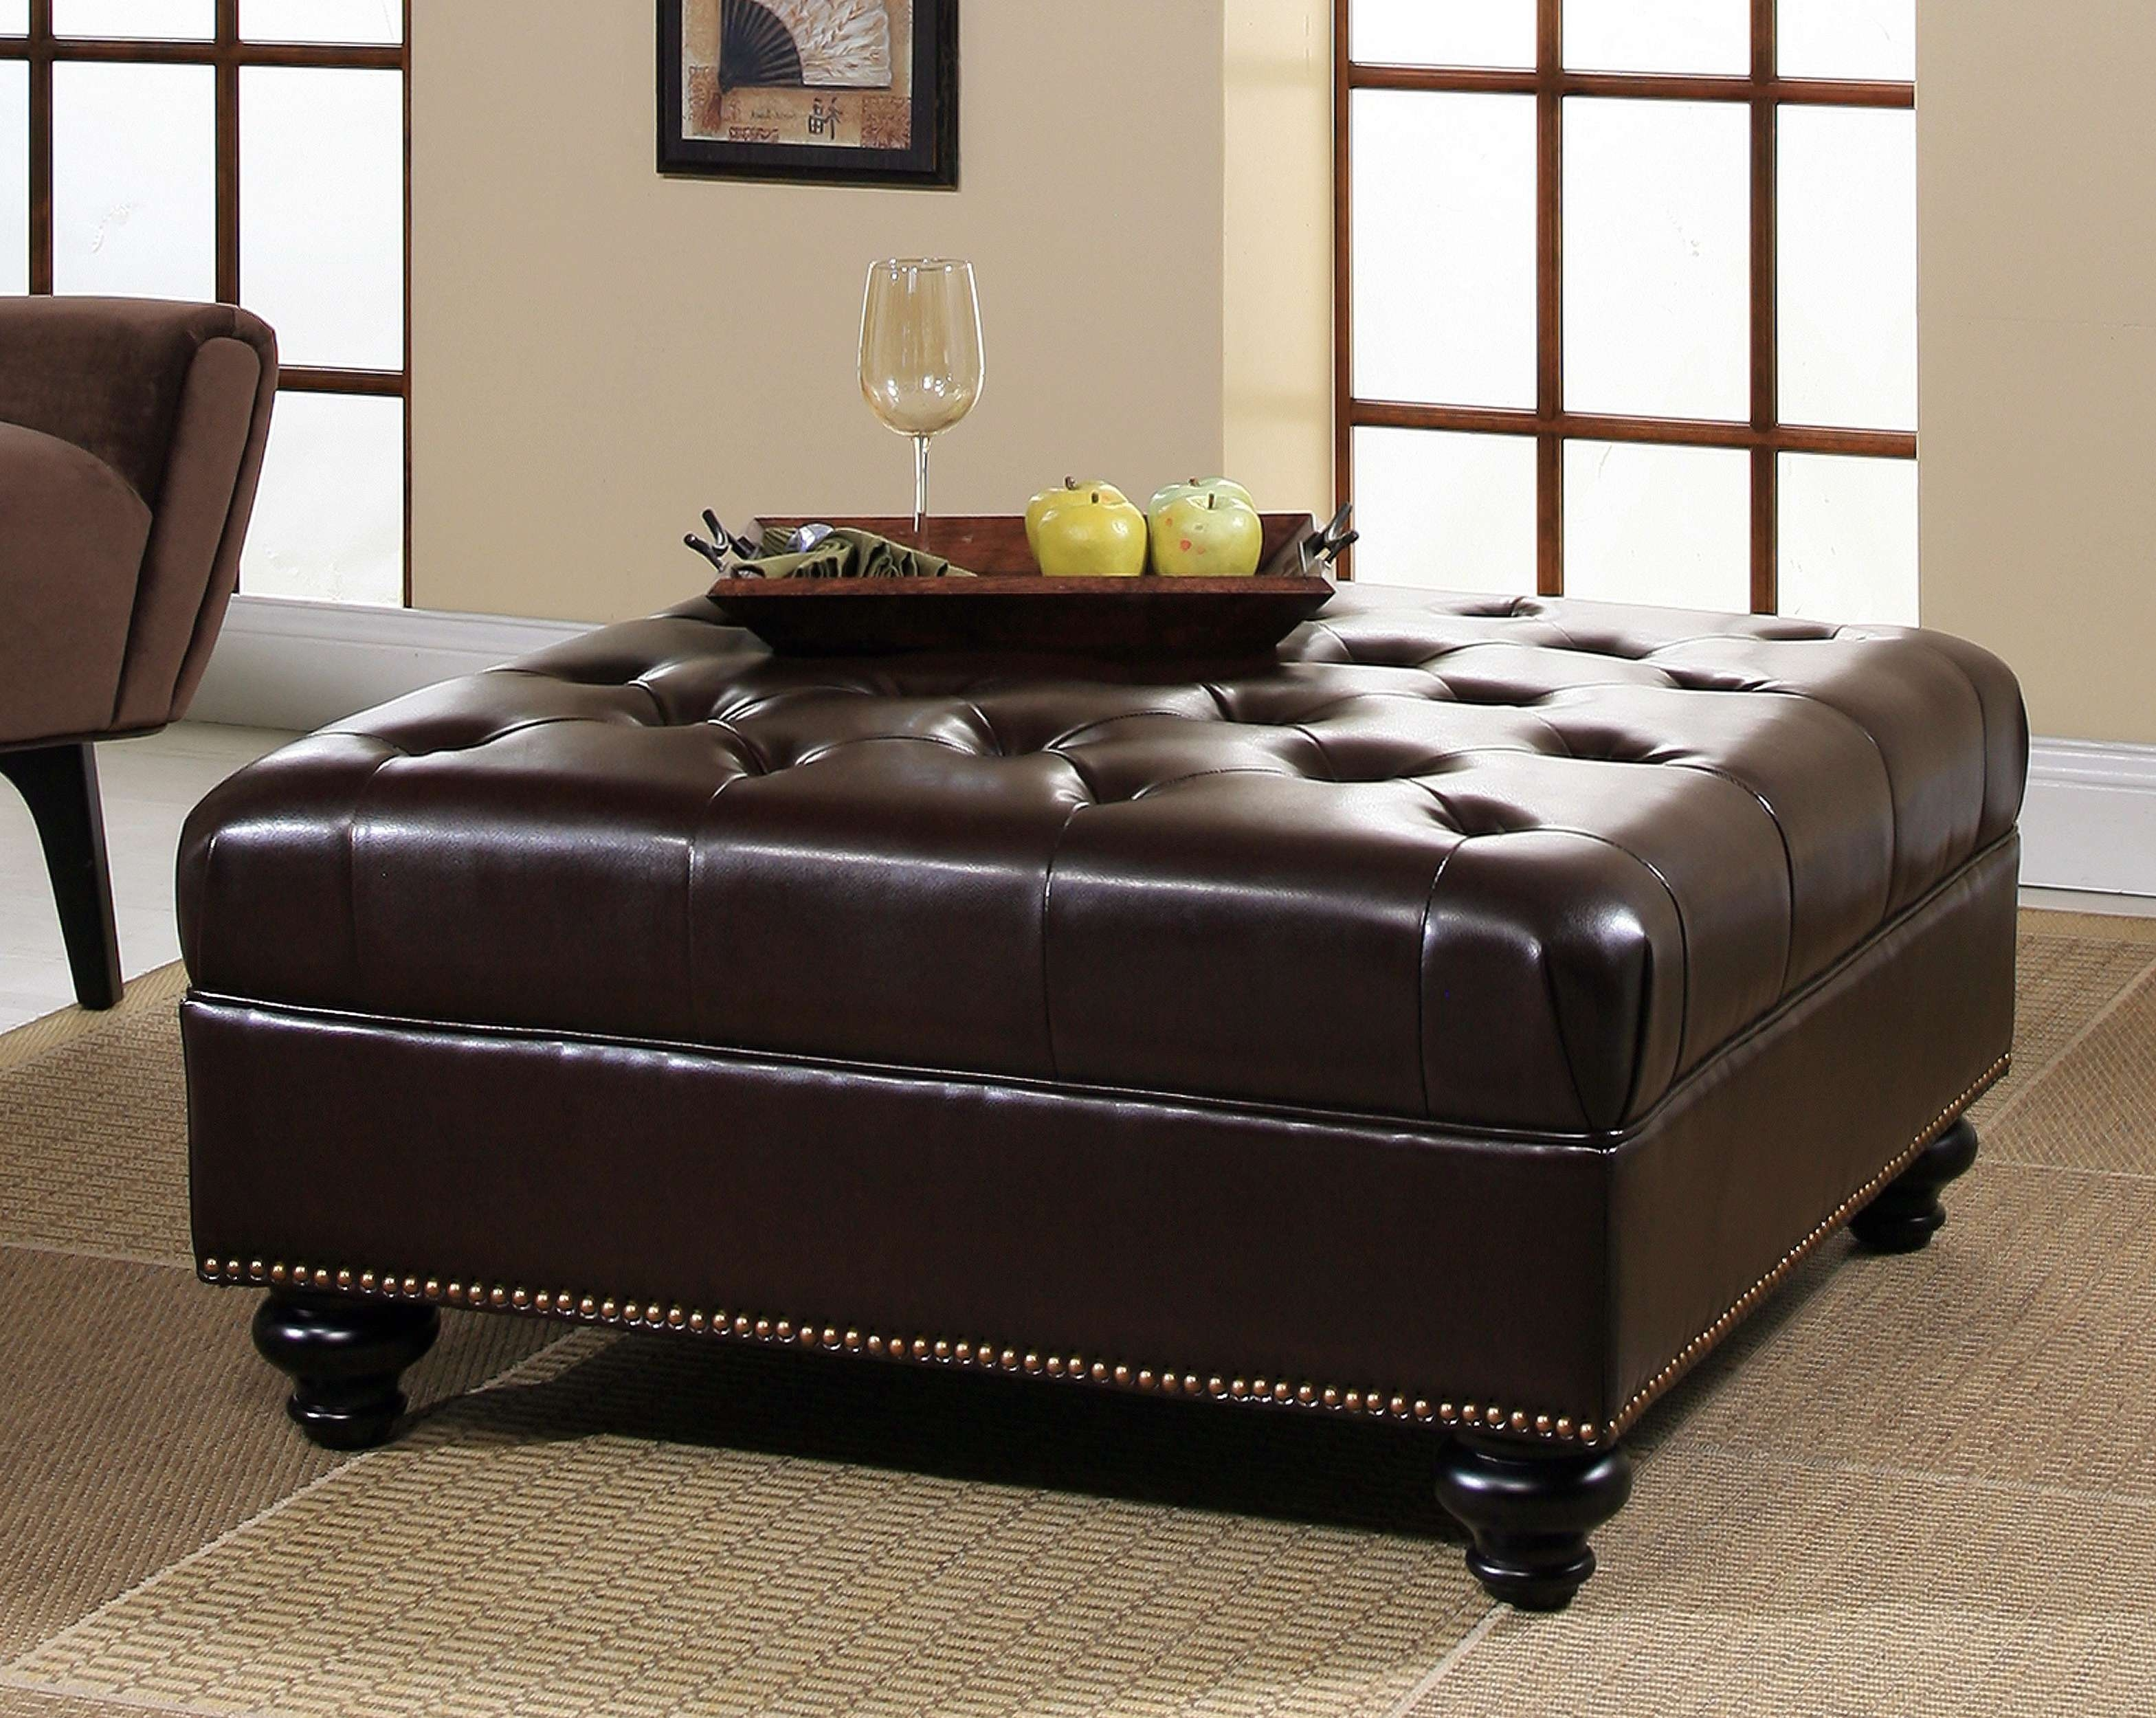 Coffee Tables : Round Coffee Table Ottoman Pier One Tufted Large With 2017 Brown Leather Ottoman Coffee Tables (View 16 of 20)